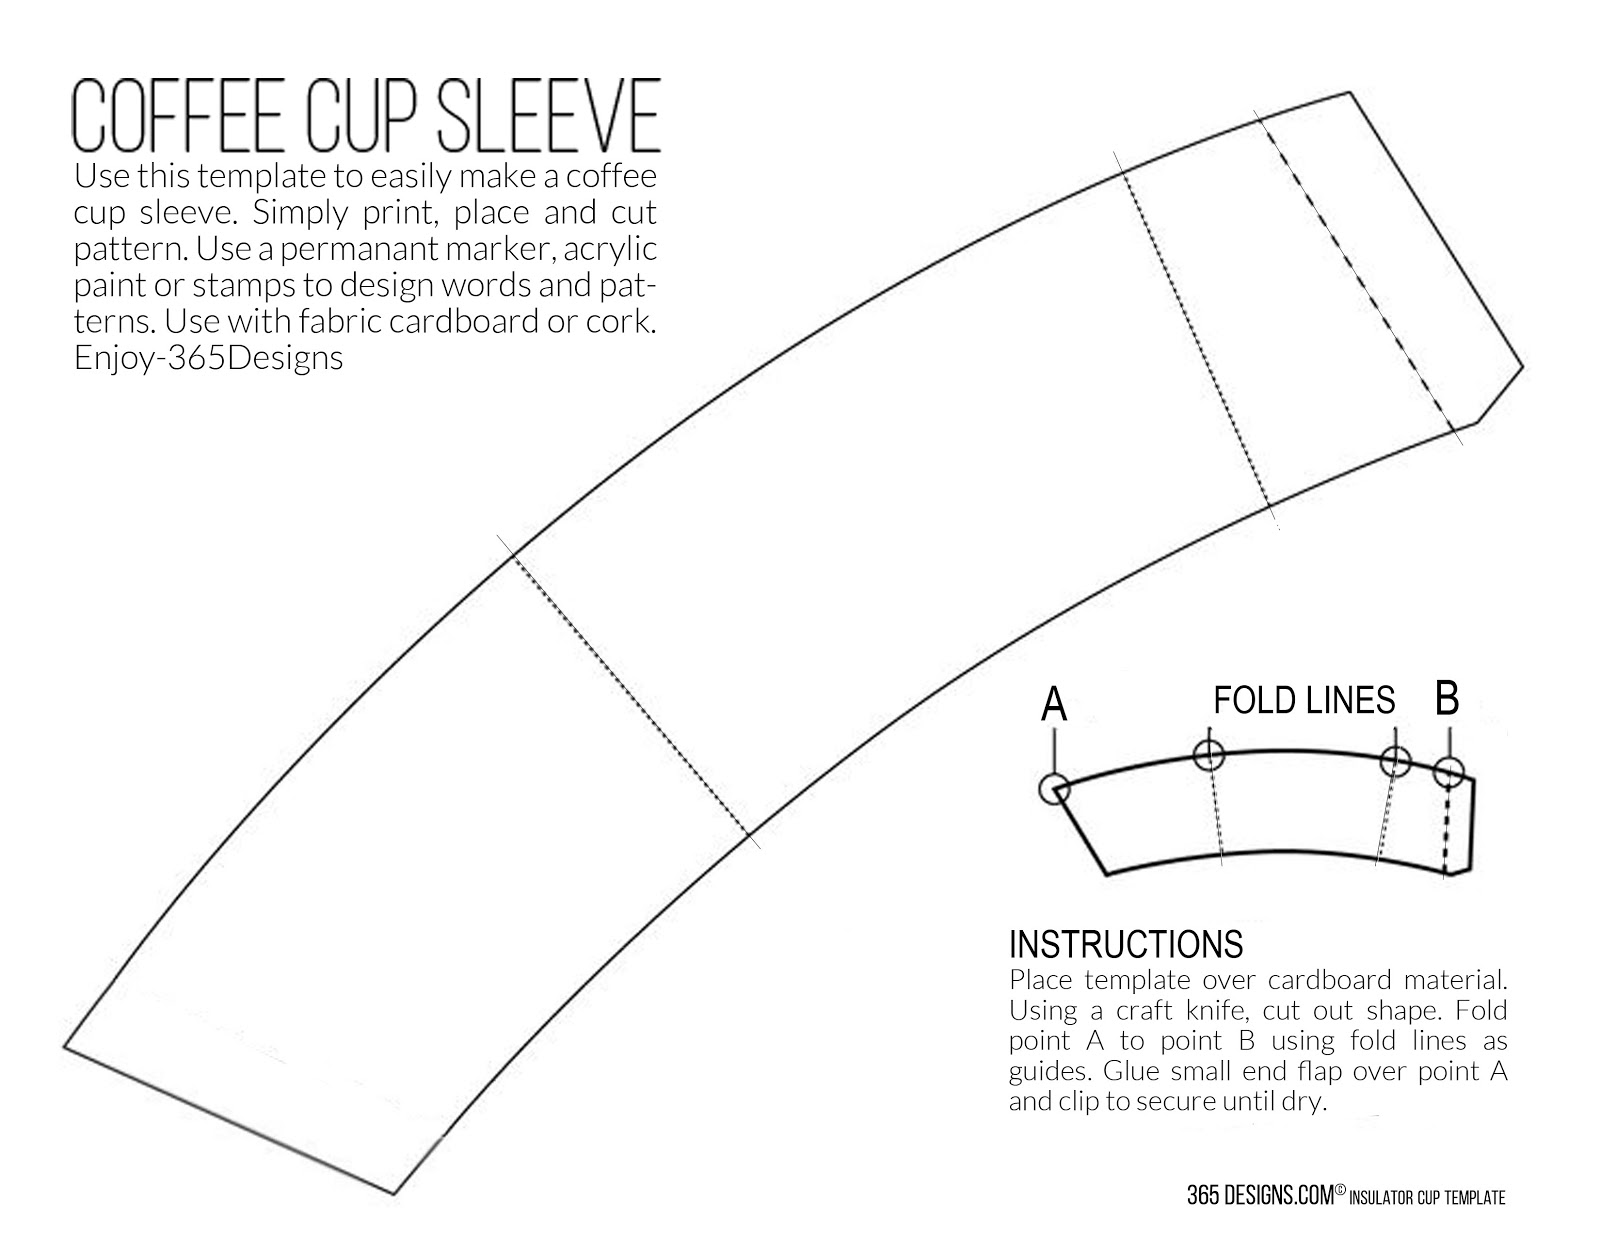 Create DIY Coffee Cozy Sleeves printable template McCafe Starbucks